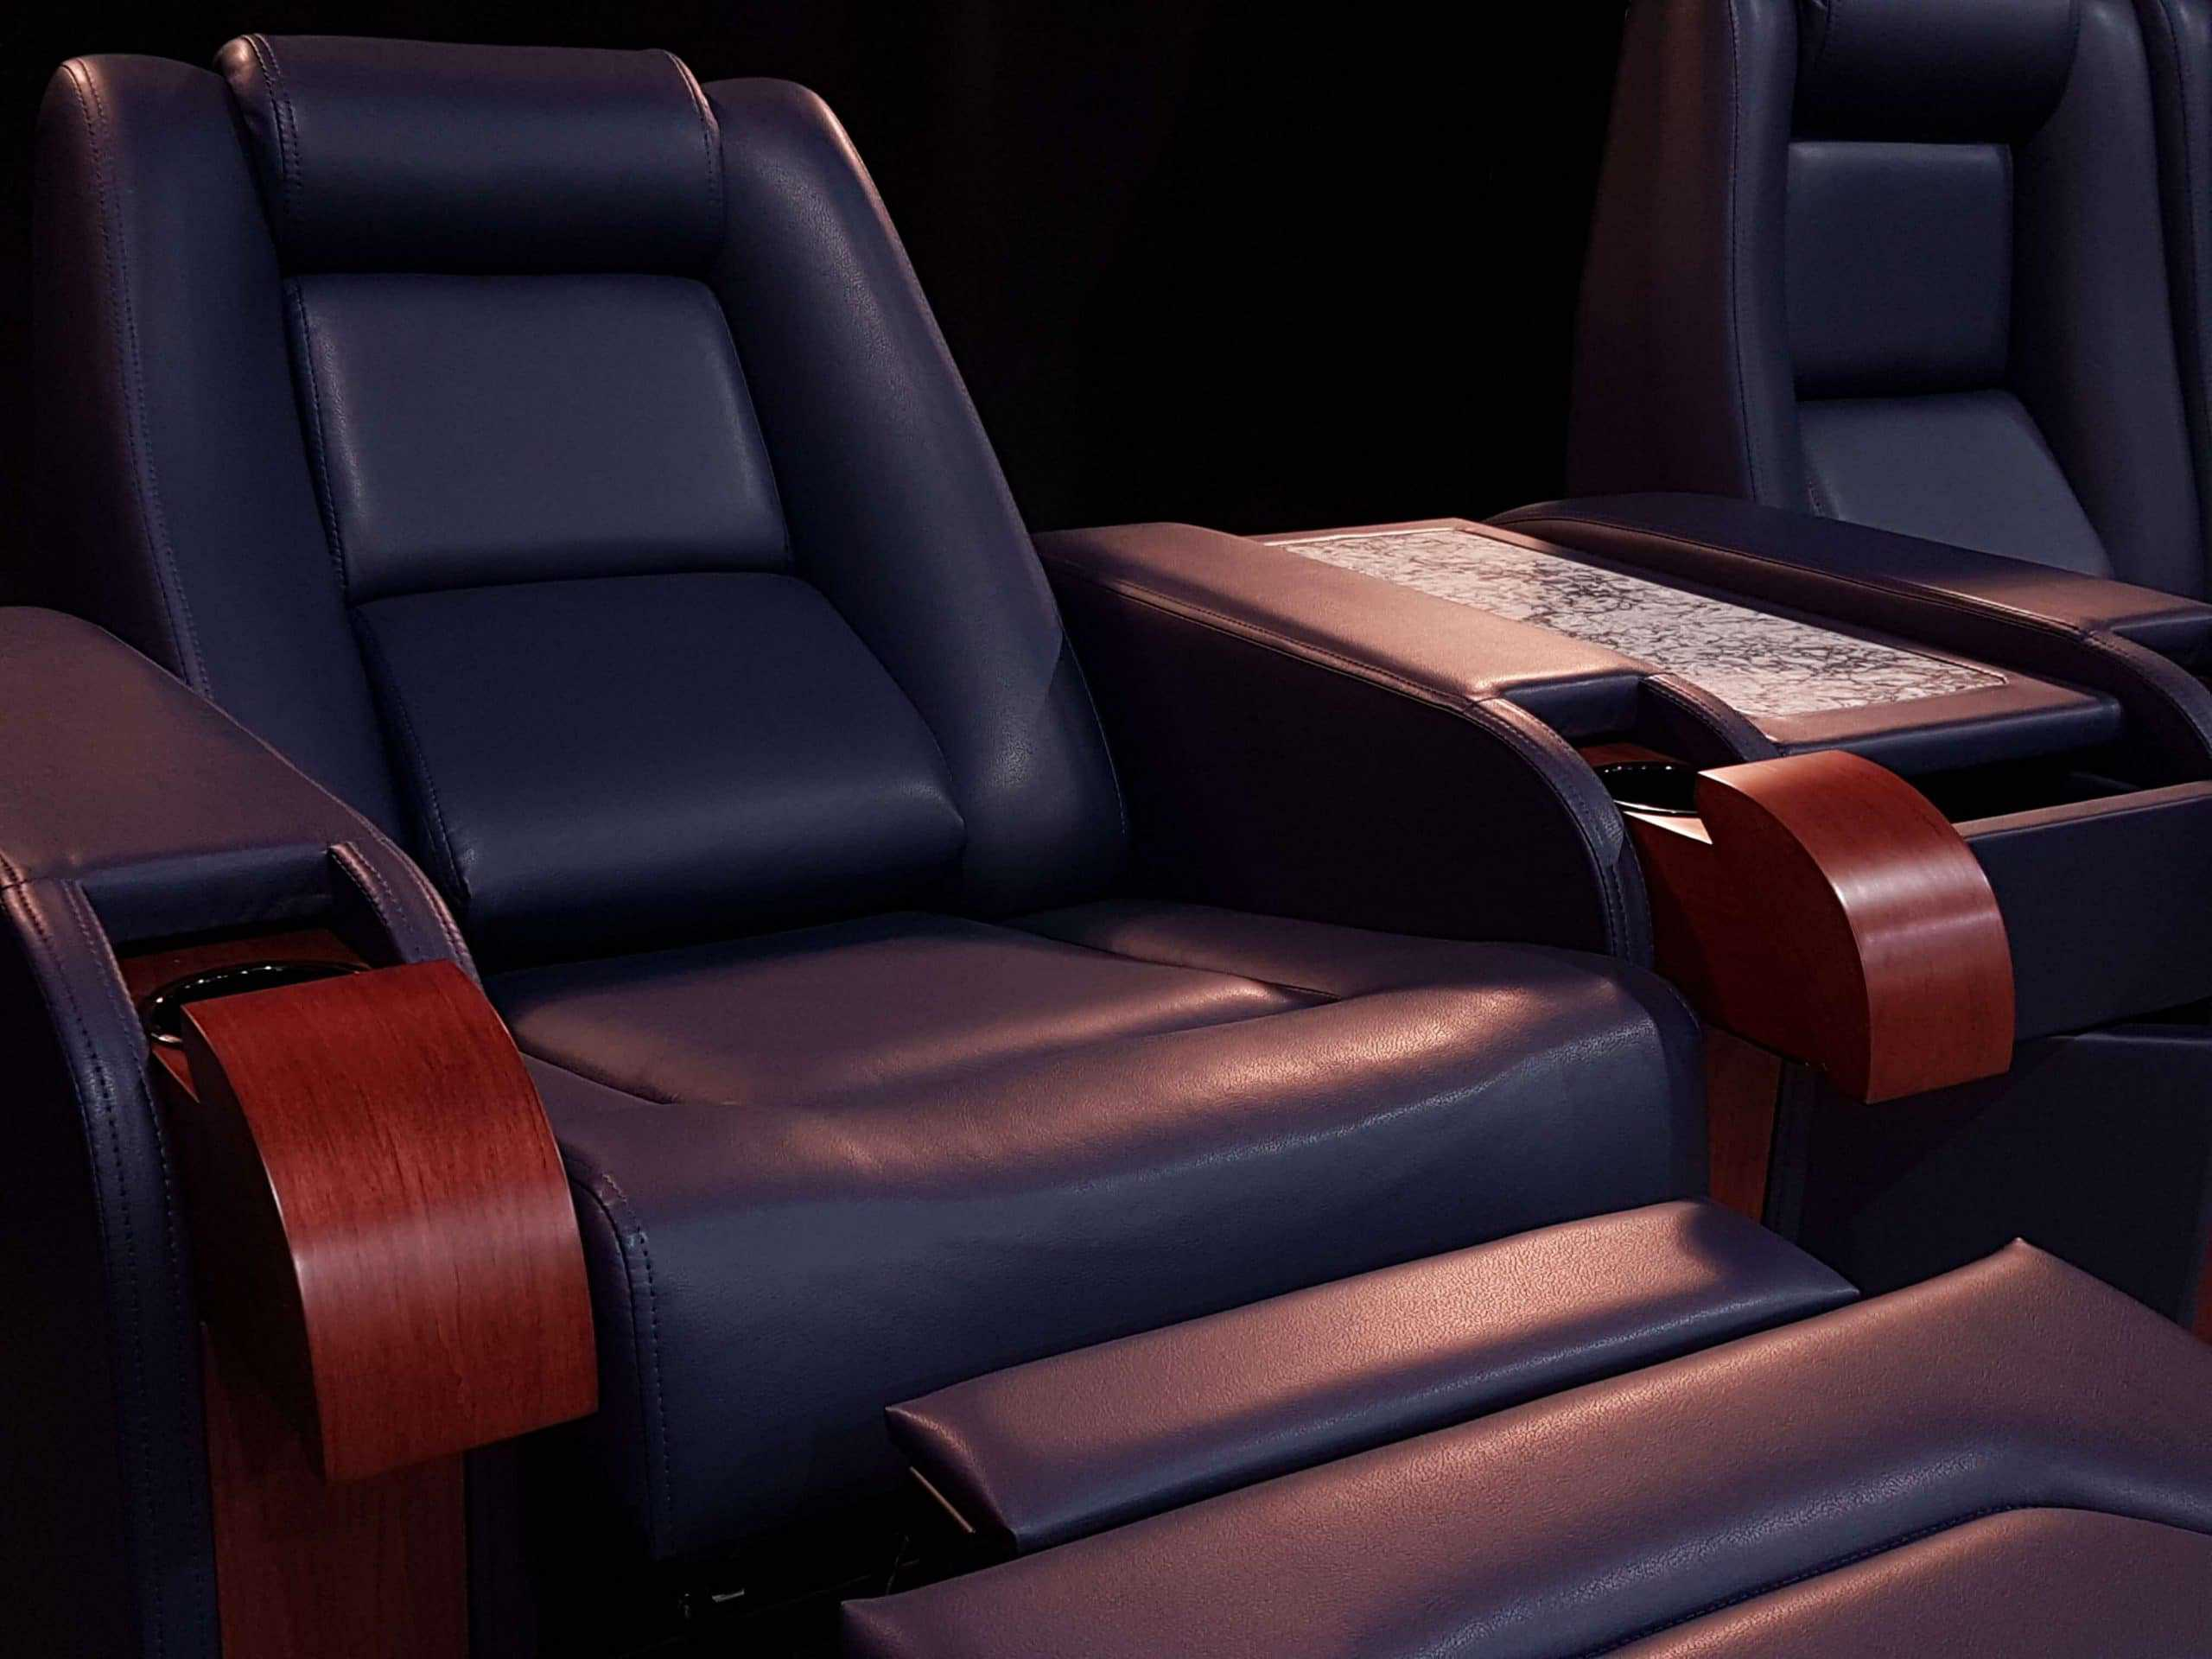 f1_blue_home_theater_chairs (1)